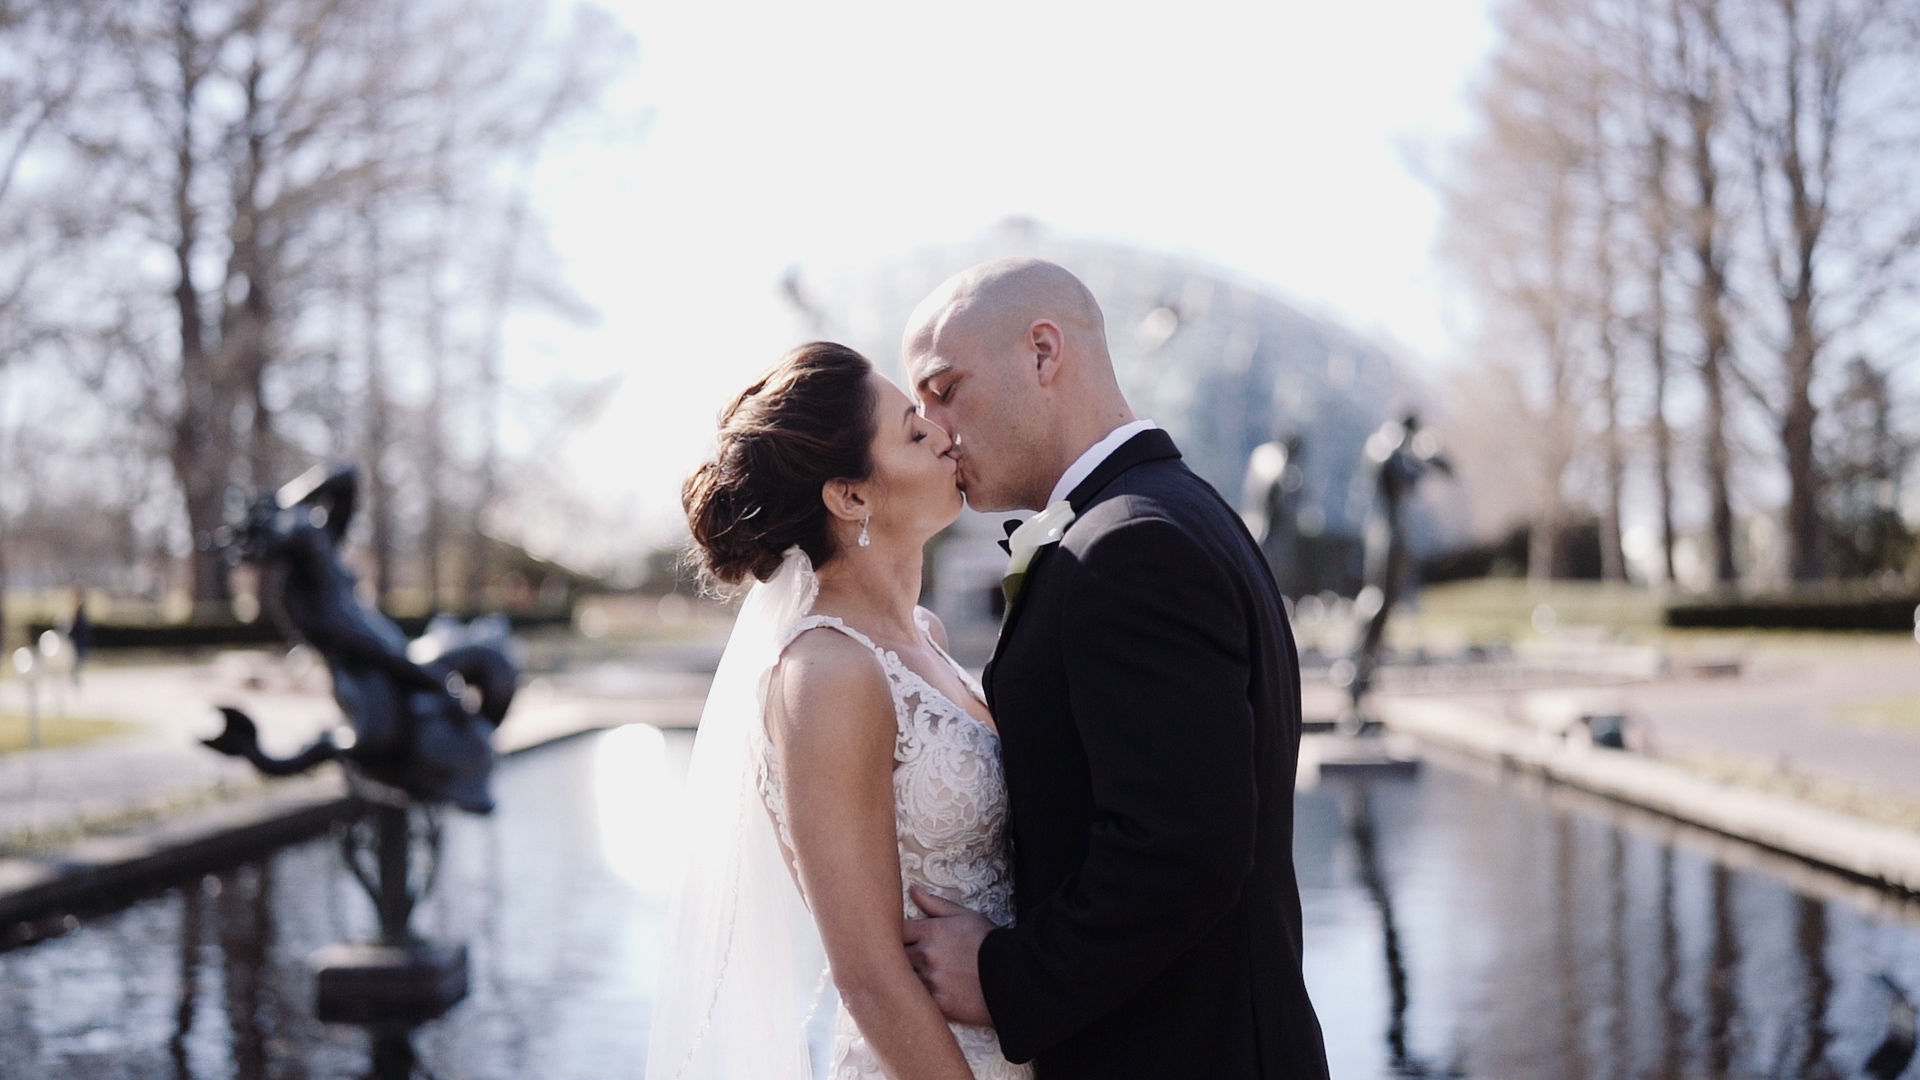 Wedding Kiss at Missouri Botanical Gardens / wedding video